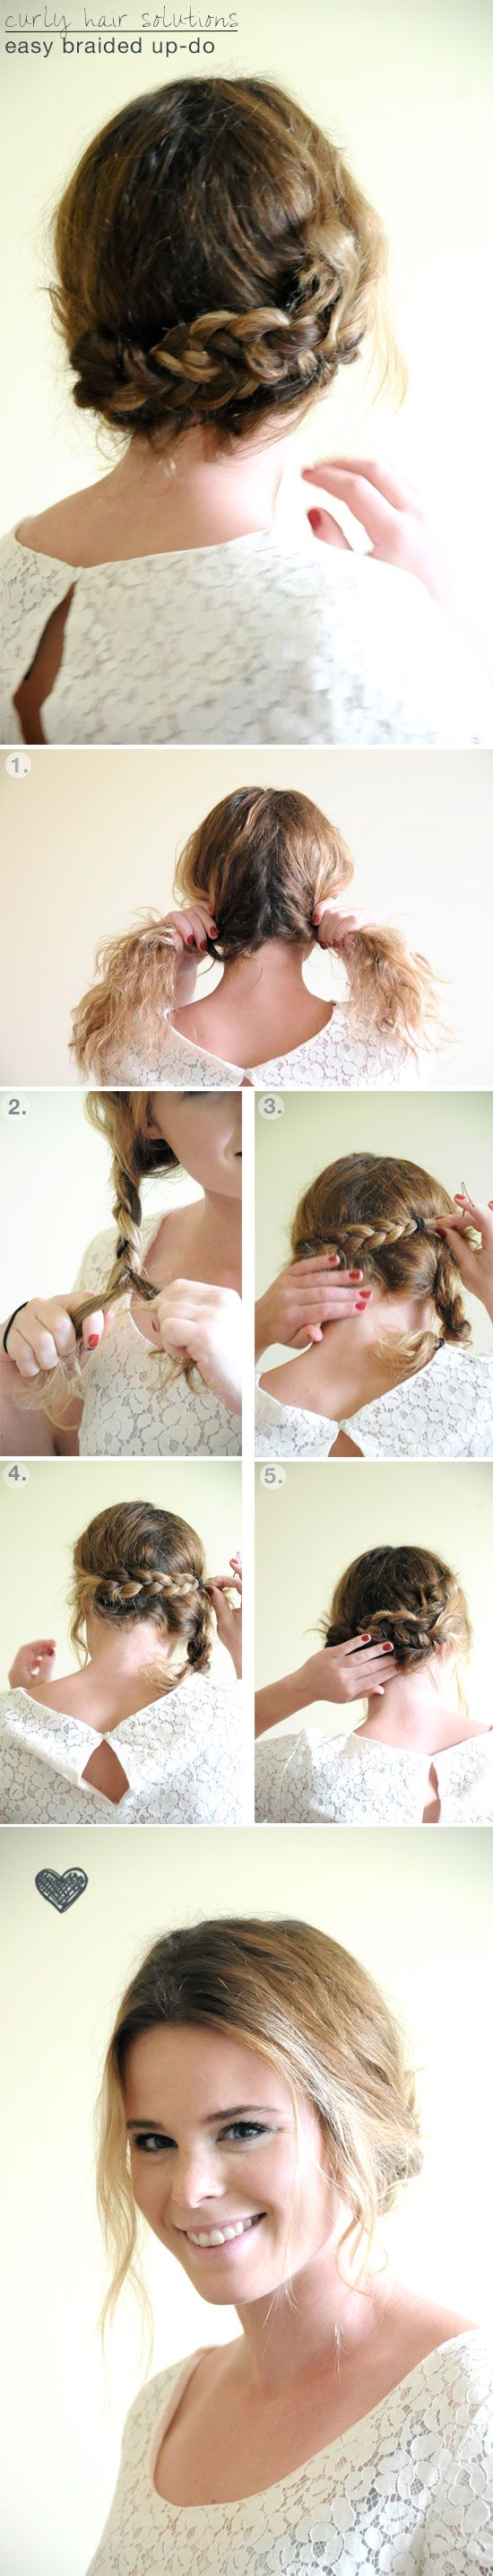 Easy braided up do hair pinterest easy braided updo updo and easy